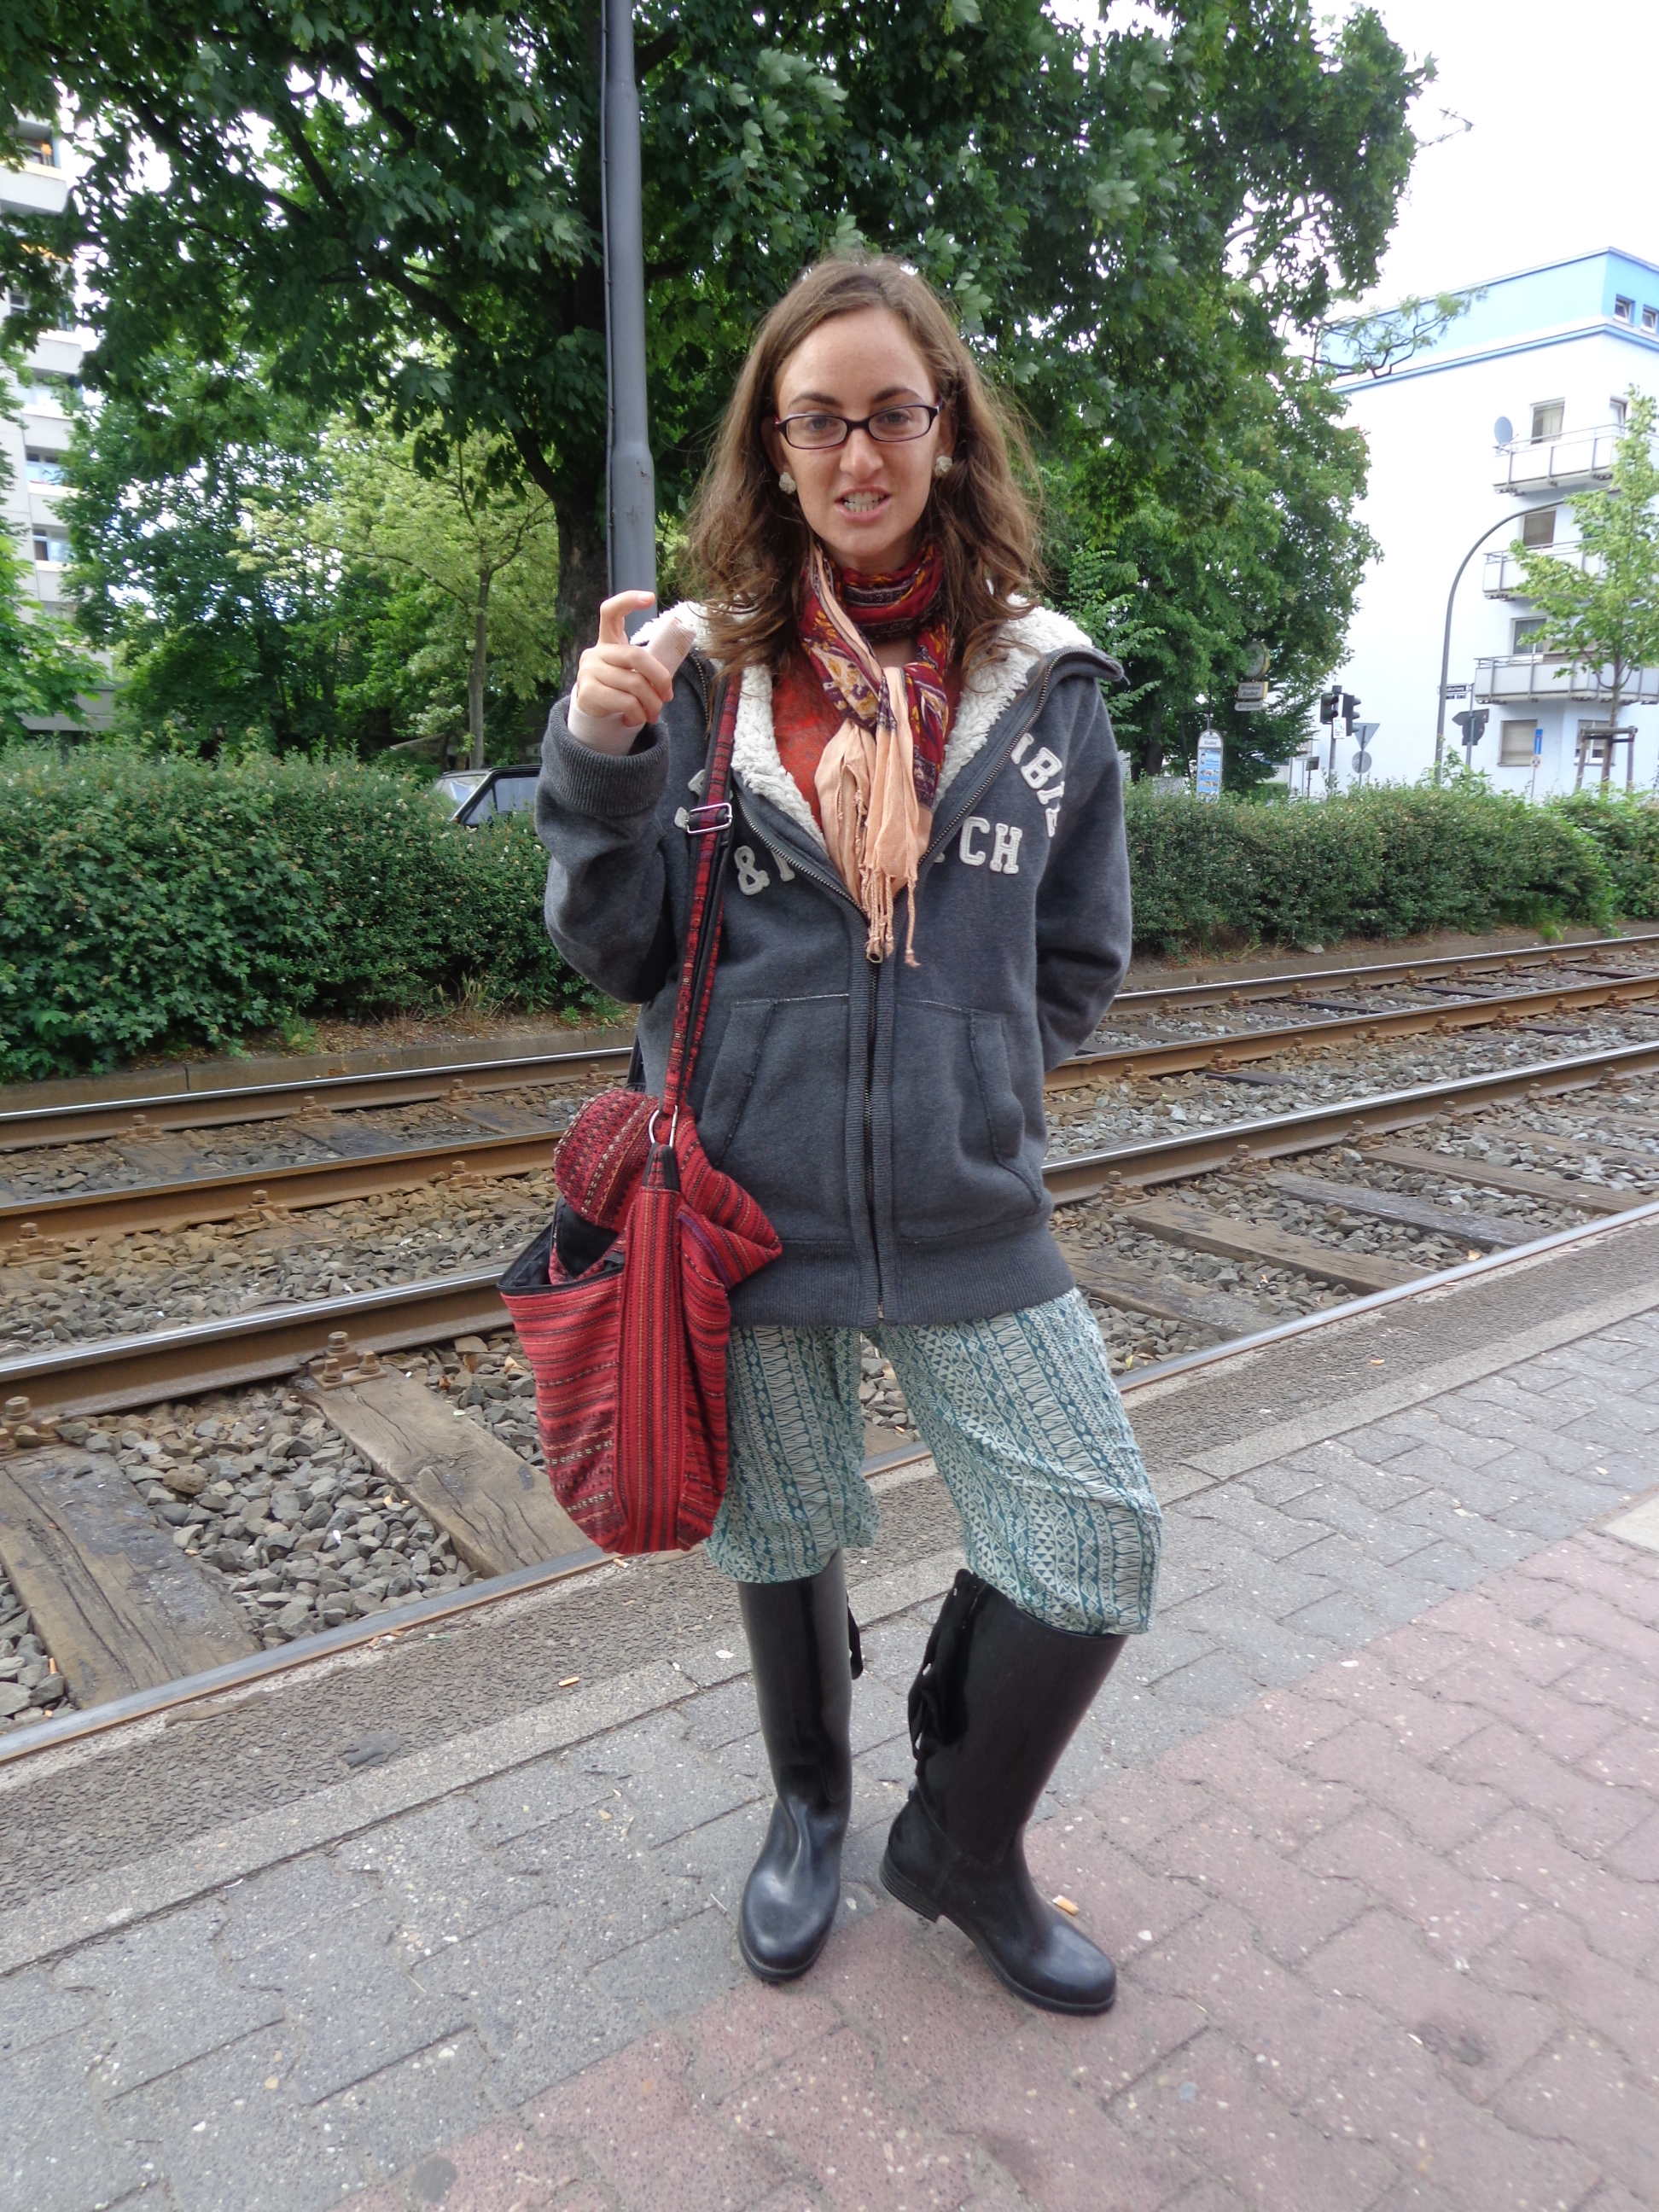 Wearing silly clothes in Germany